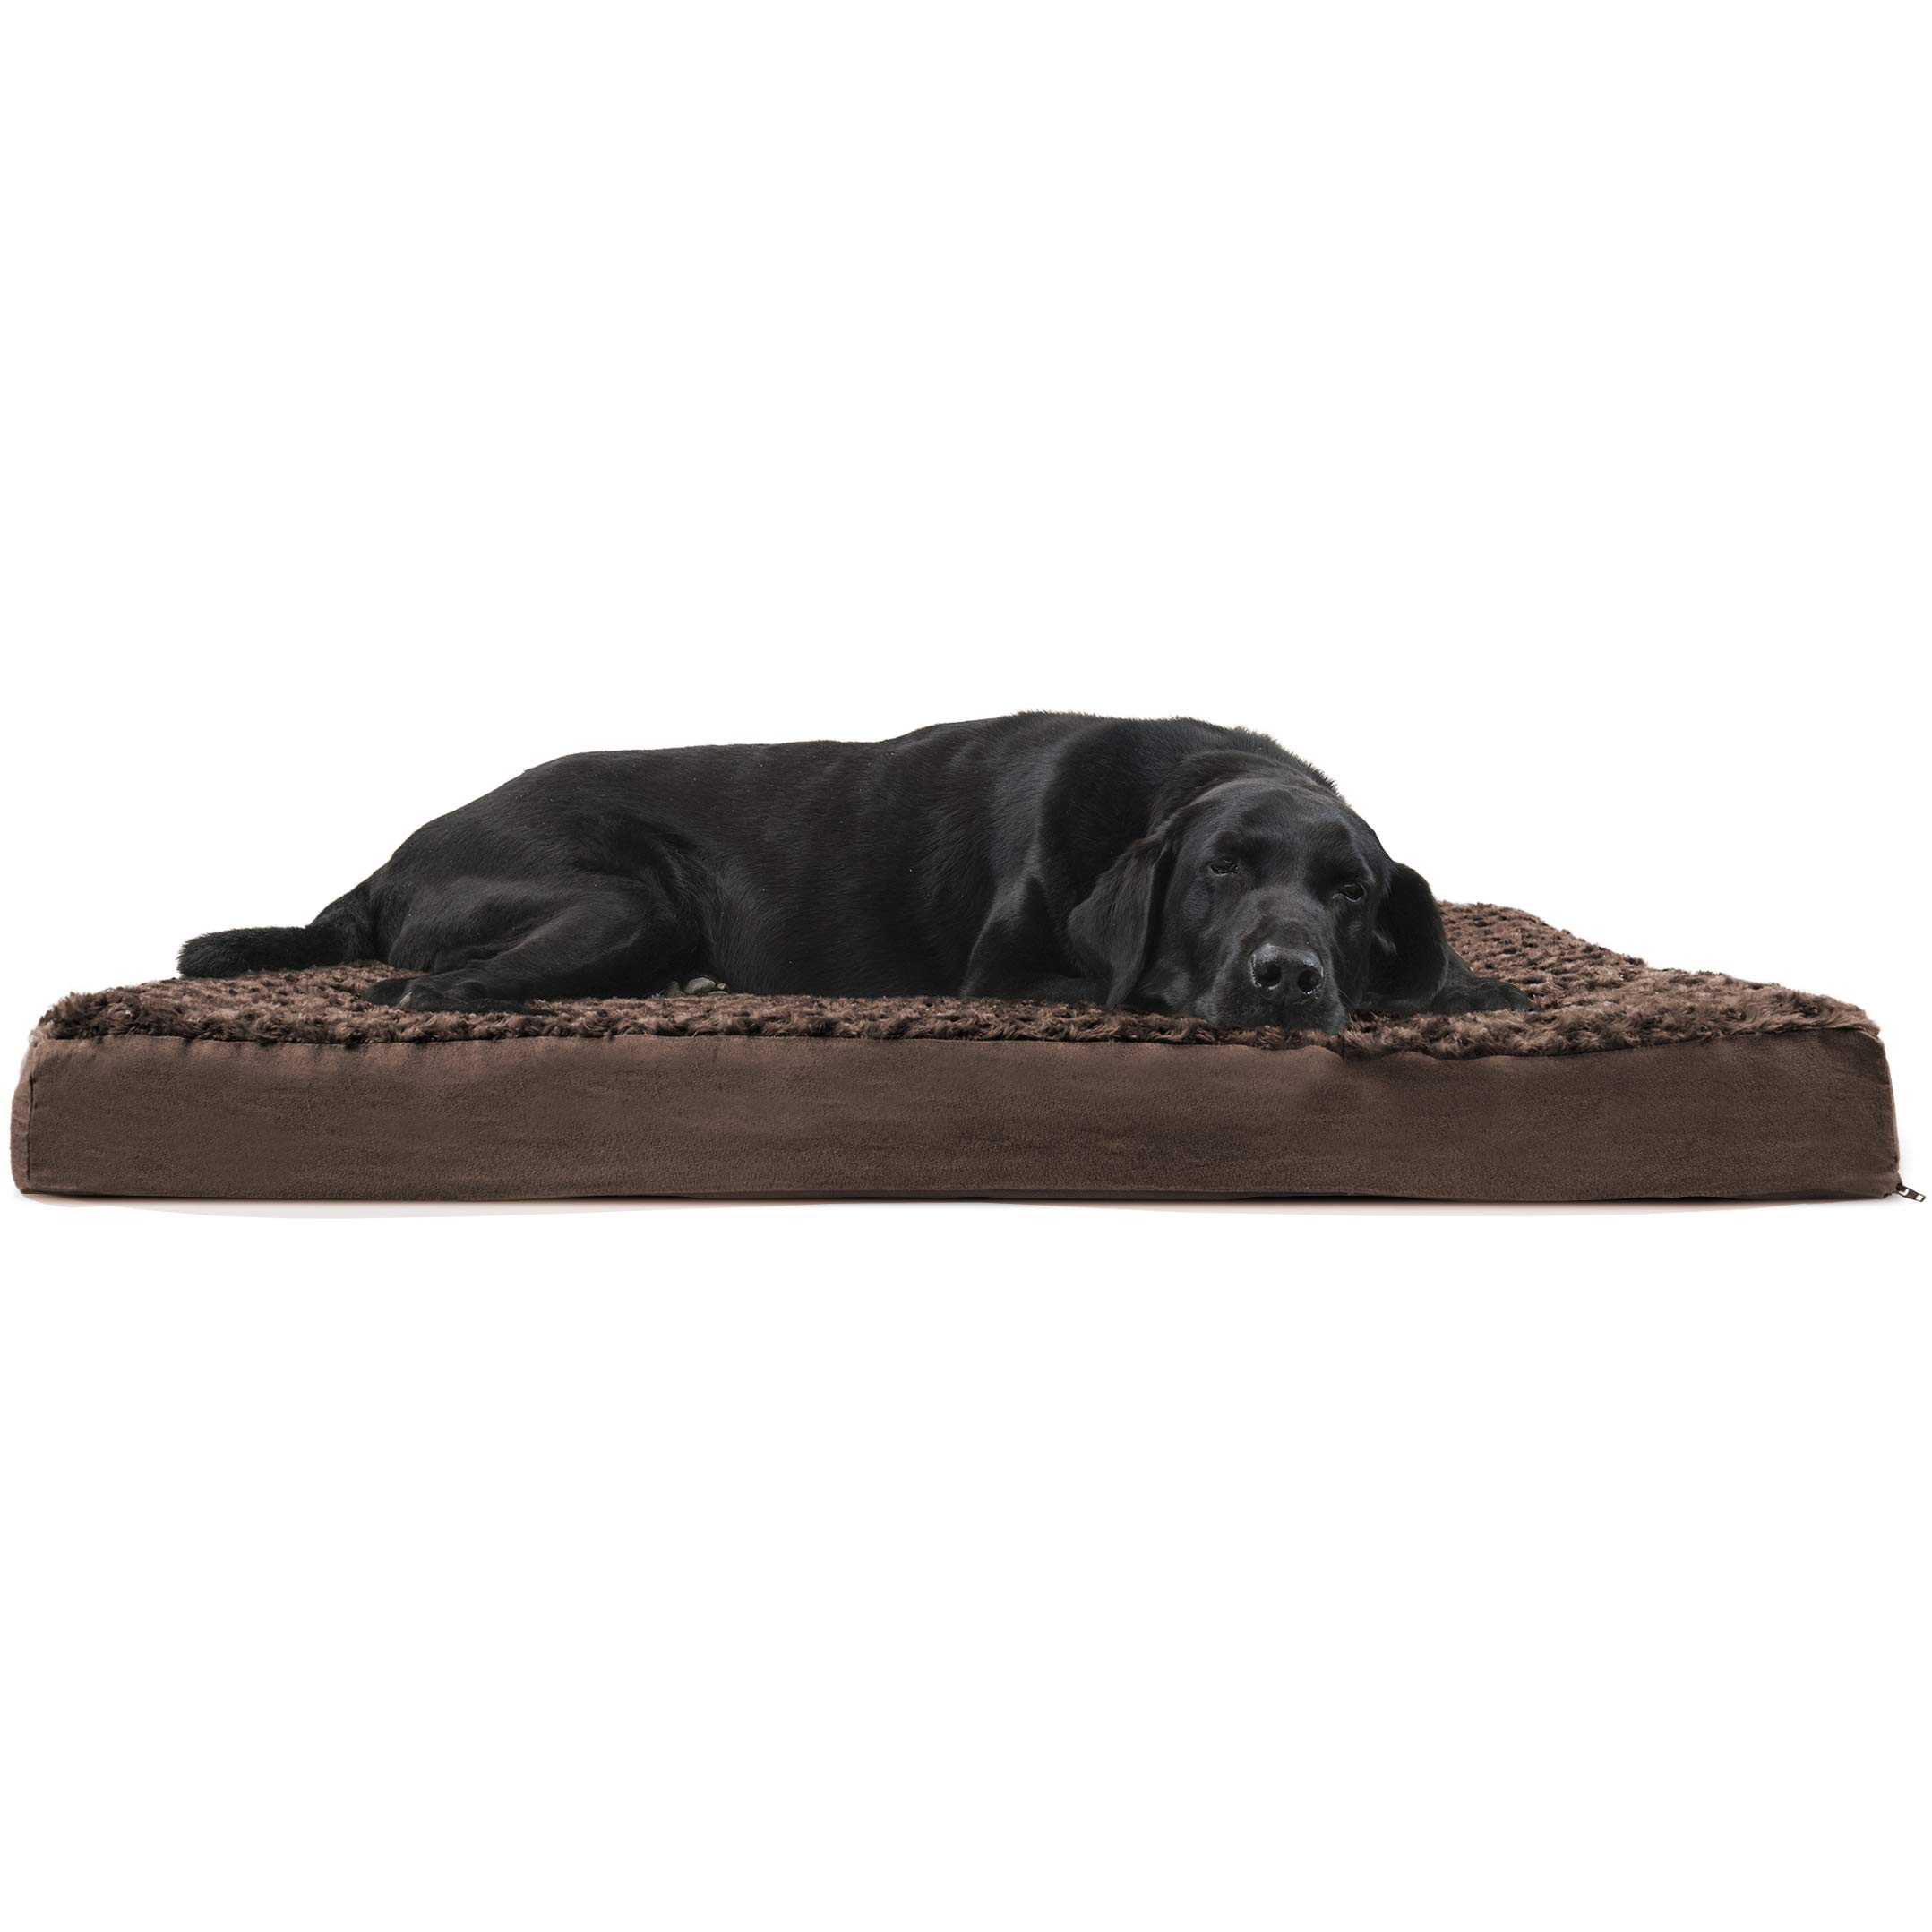 FurHaven Deluxe Orthopedic Pet Bed Mattress for Dogs and Cats, Chocolate, Jumbo